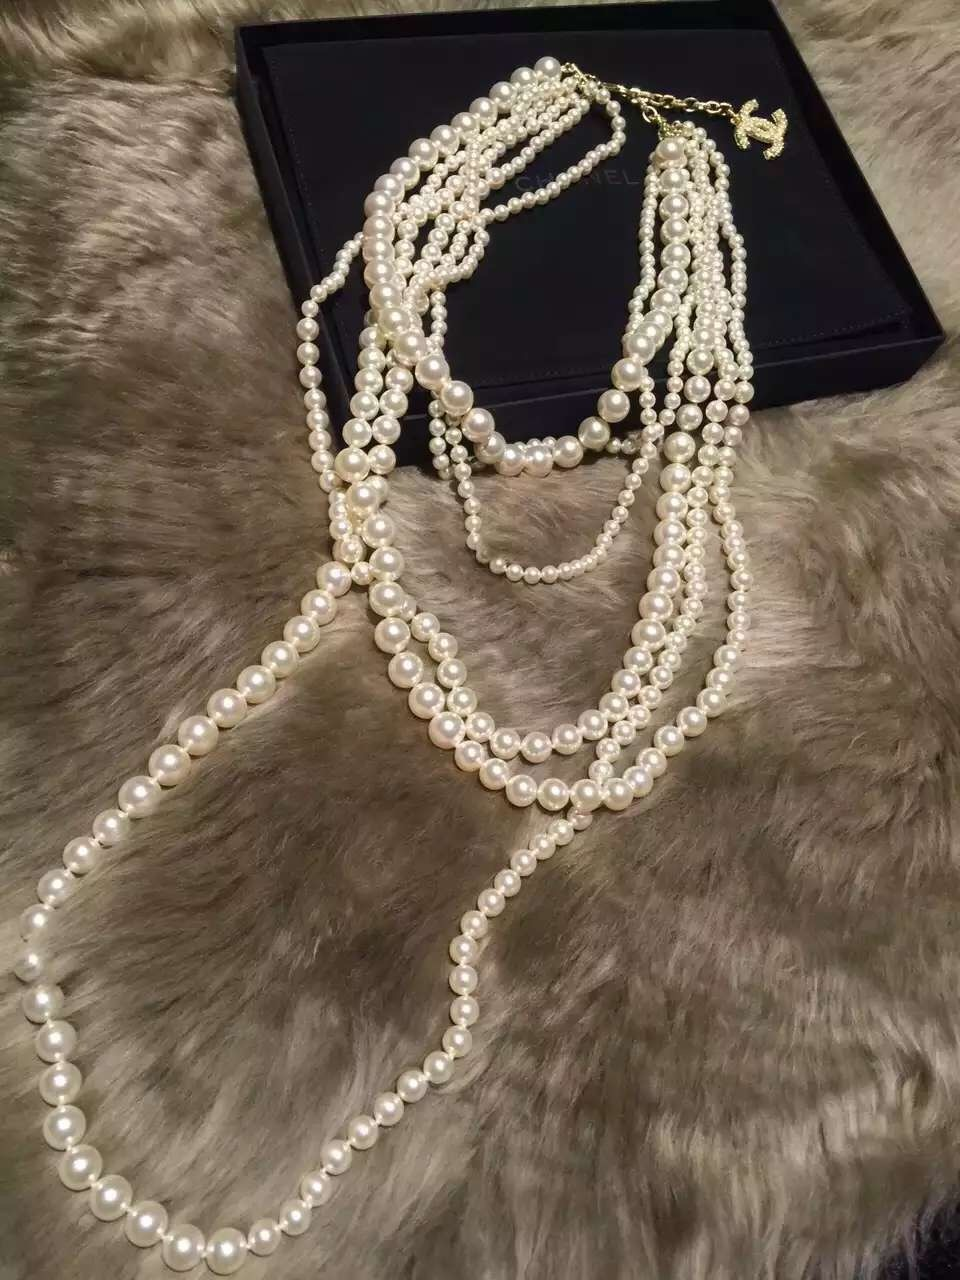 Authentic CLASSIC CHANEL RUNWAY Multi 6 STRAND Faux Pearl NECKLACE RARE